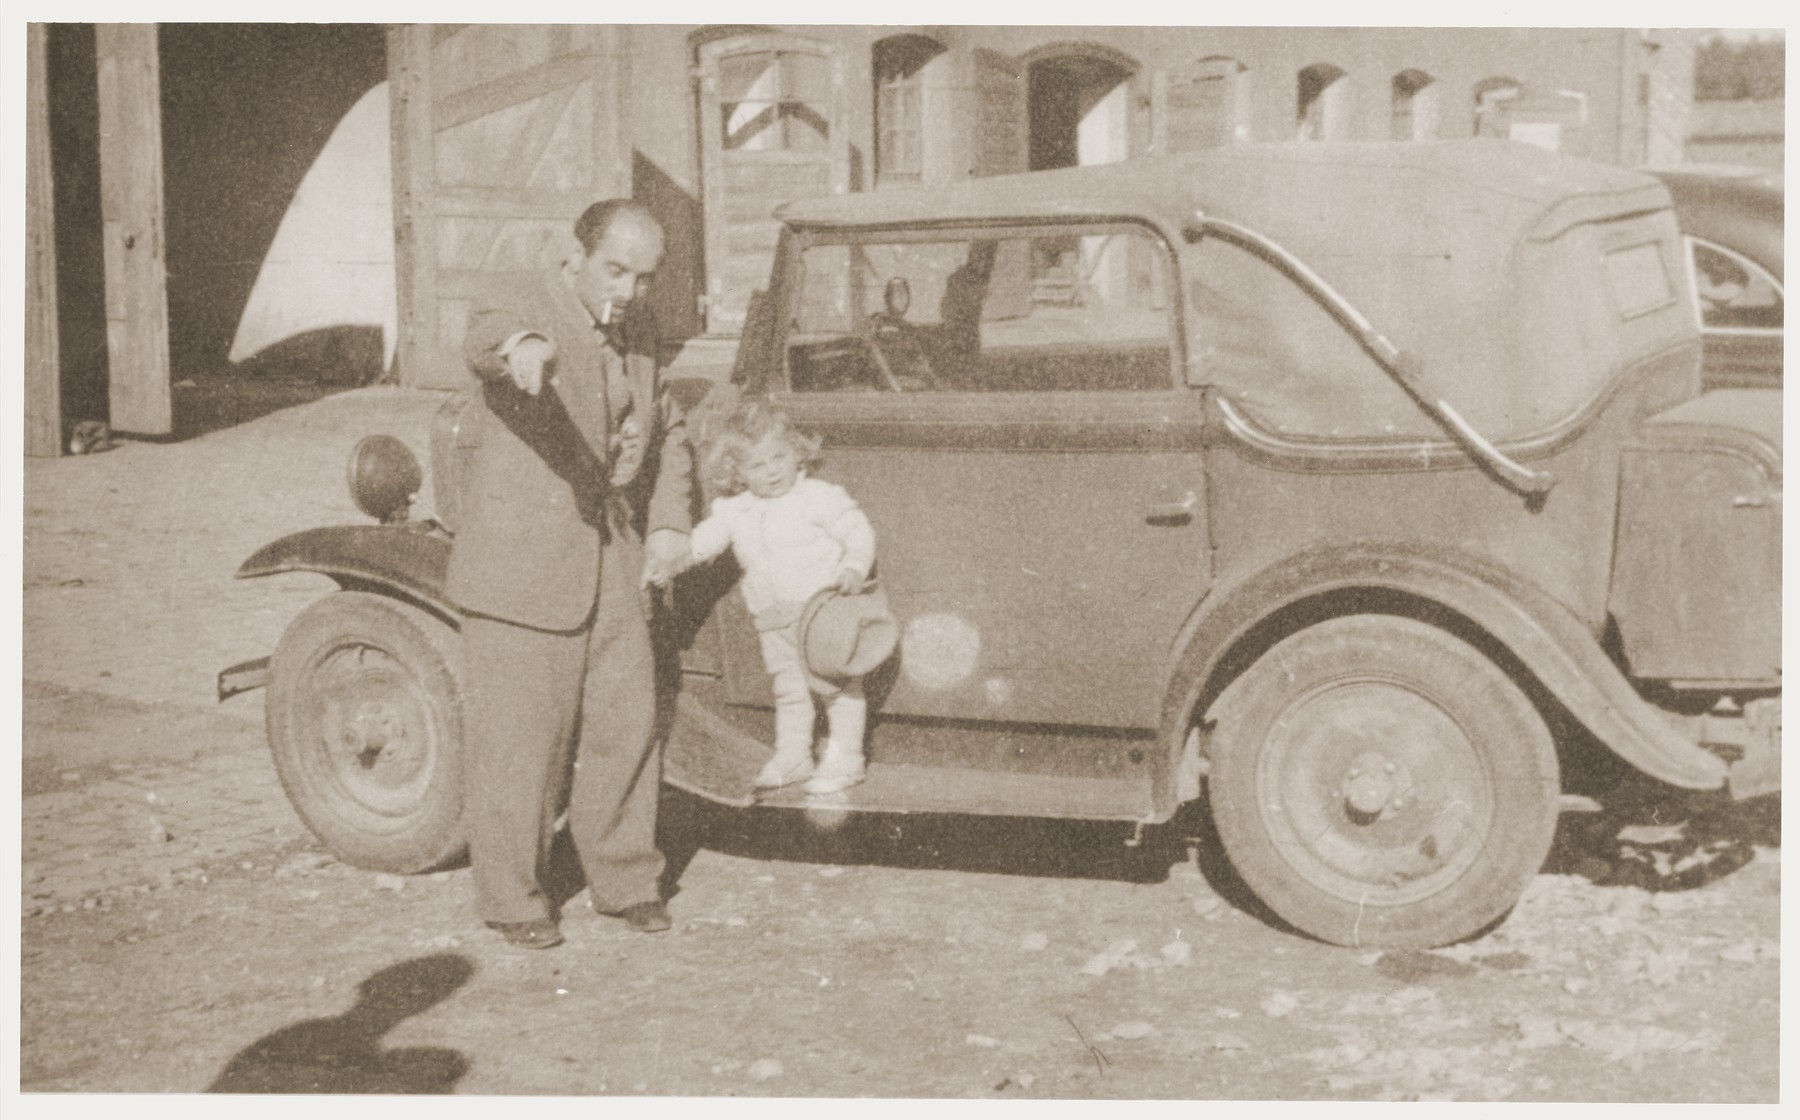 A little girl poses on the running board of a car while holding her father's hand at the Kibbutz Nili hachshara (Zionist collective) in Pleikershof, Germany.    Pictured are Noach Miedzinski and his daughter Nili Ruchana.